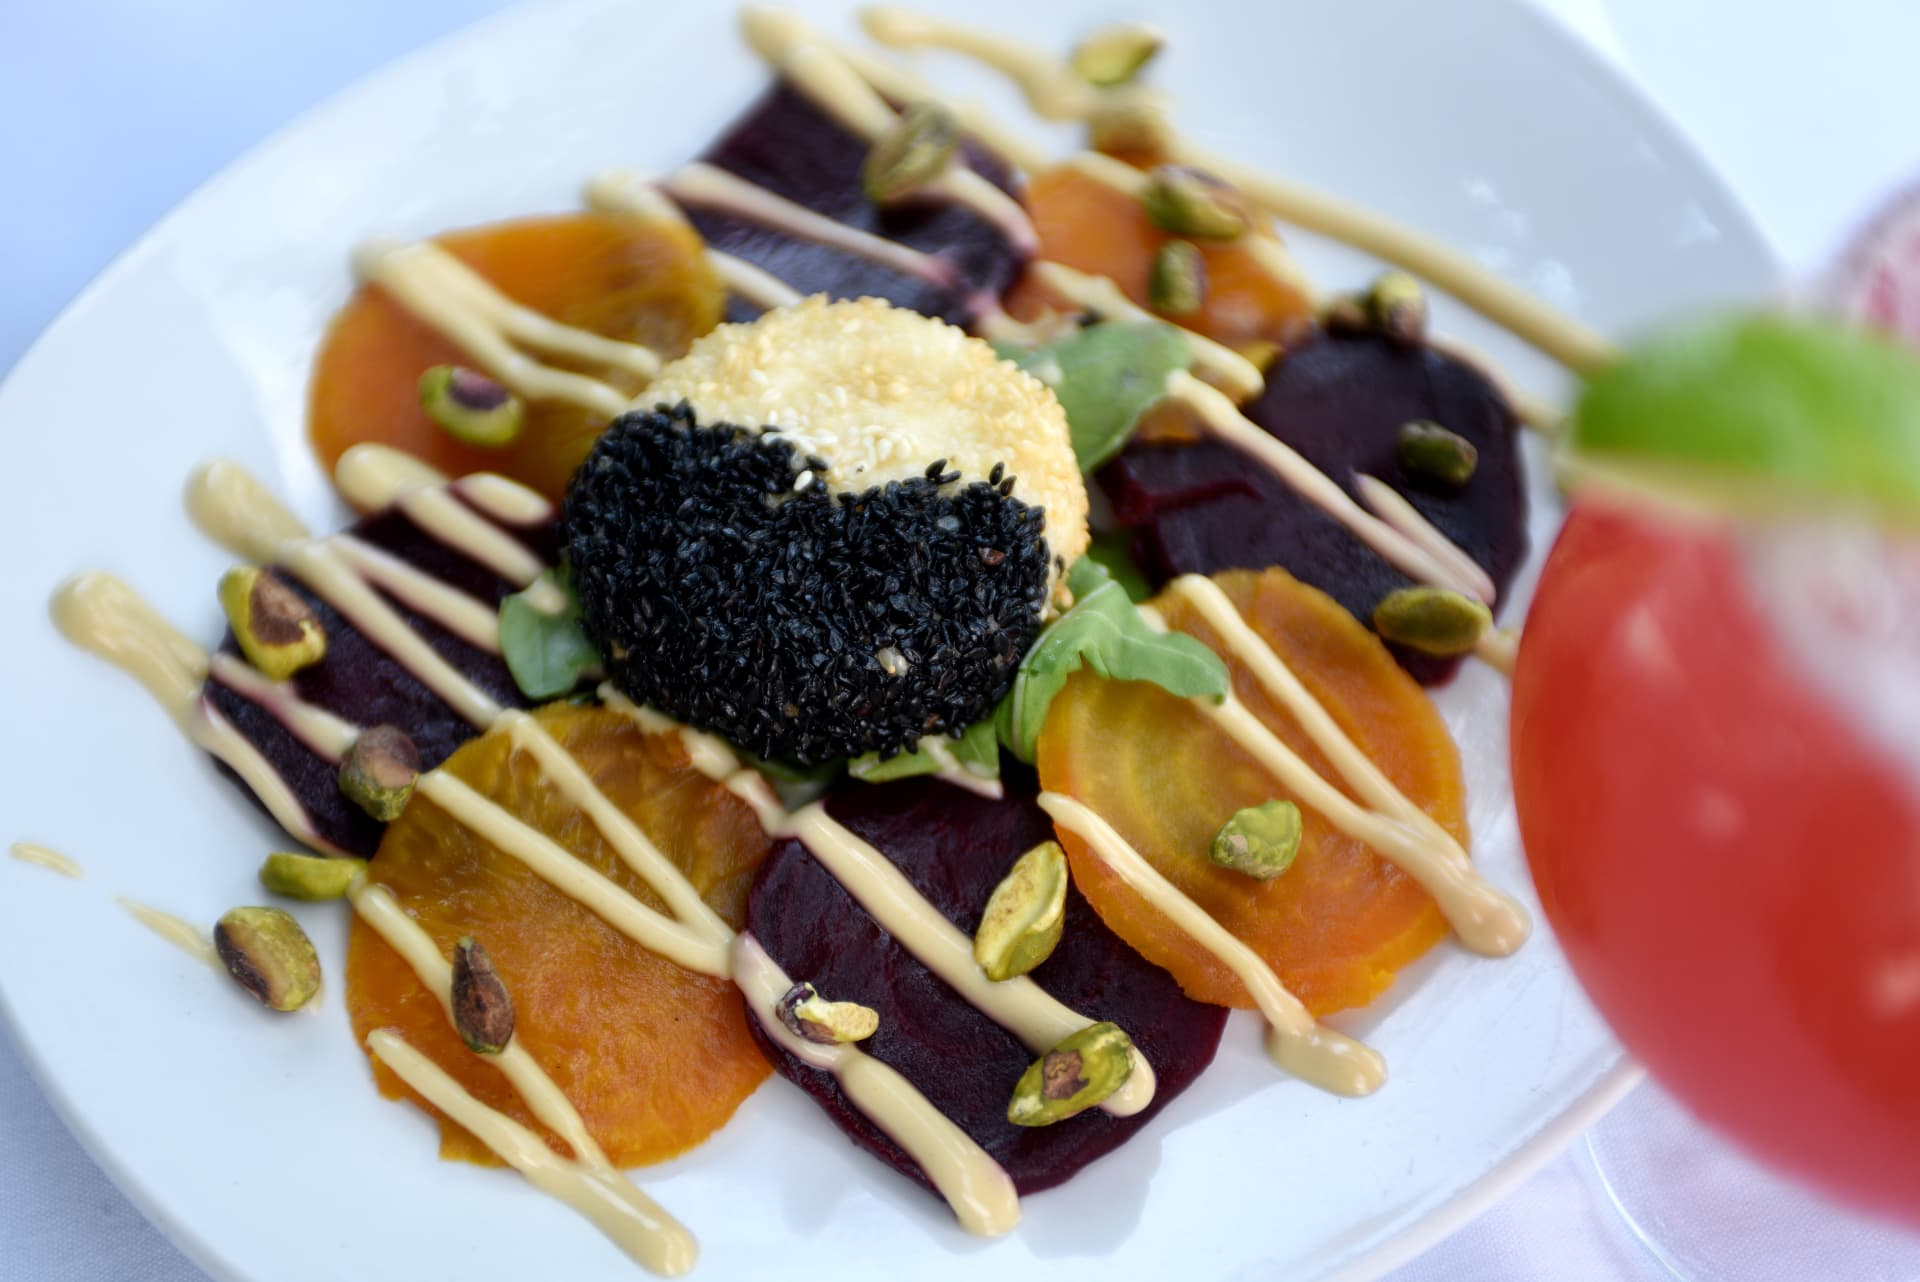 Roasted Red & Yellow Beets